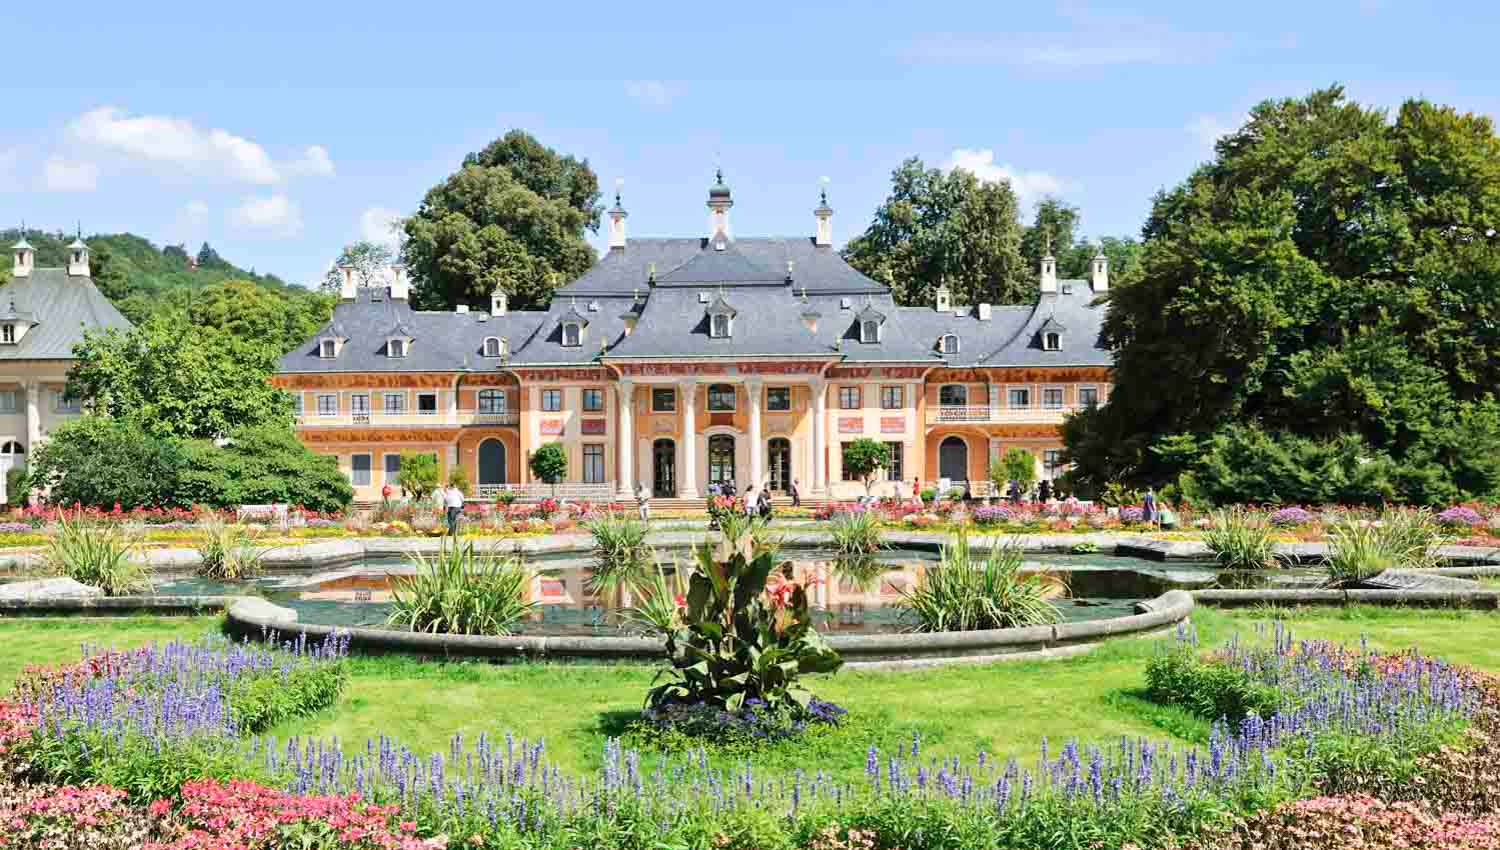 Castillo de Pillnitz